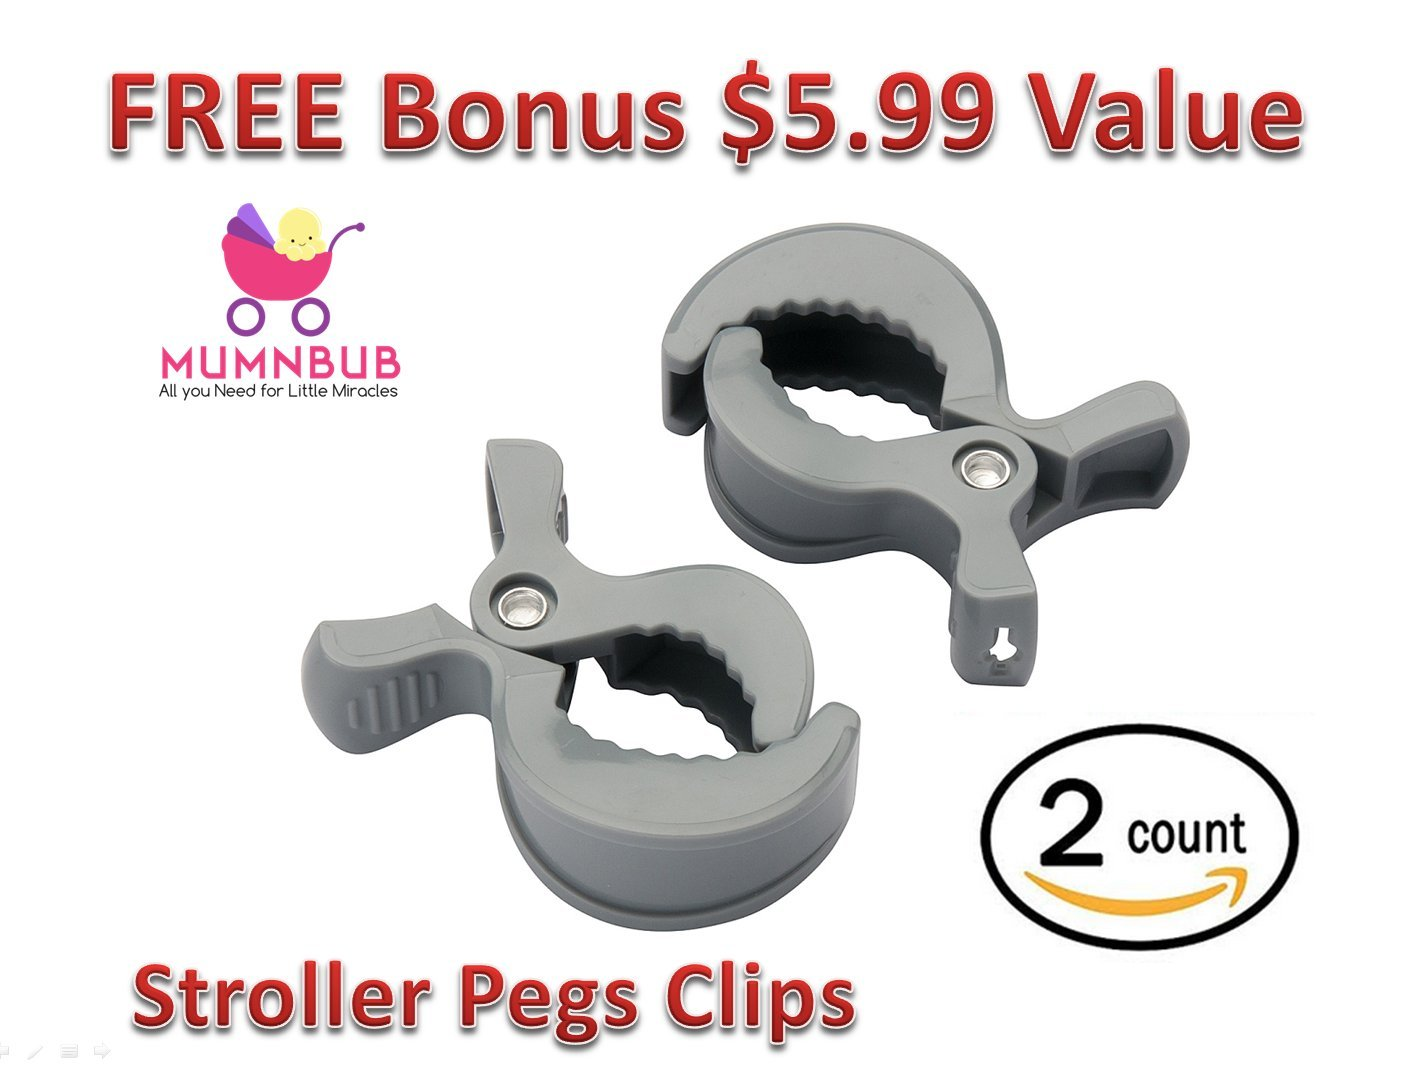 Universal Fit Perfect Pram Accessories for Hanging Diaper Bag 2 Pack MumnBub Stroller Hook Groceries -Includes 2 Stroller Pegs Shopping Bag Multi-Purpose Heavy Duty Buggy Clips for Mommy Grey